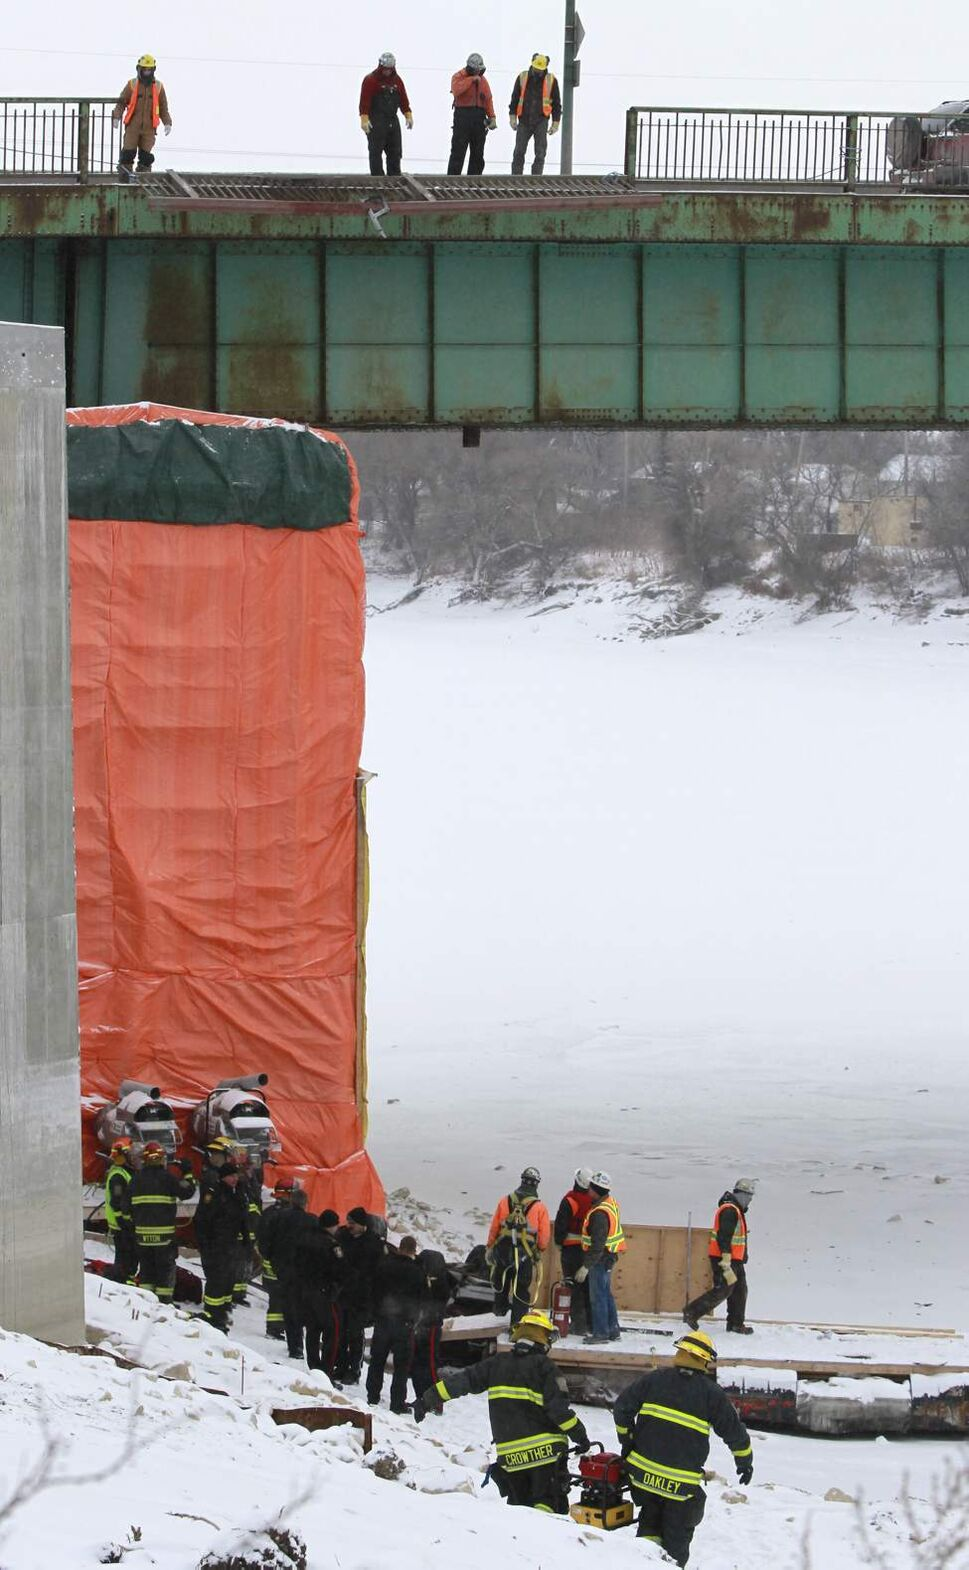 Emergency crews and construction workers evaluate the scene where a vehicle crashed through a railing on the Disraeli Bridge near Midwinter Ave. and fell on the shore of the Red River. Kaitlyn Jenna Lee Fraser, 19, died in the crash. January 18, 2012      (WAYNE GLOWACKI/WINNIPEG FREE PRESS)